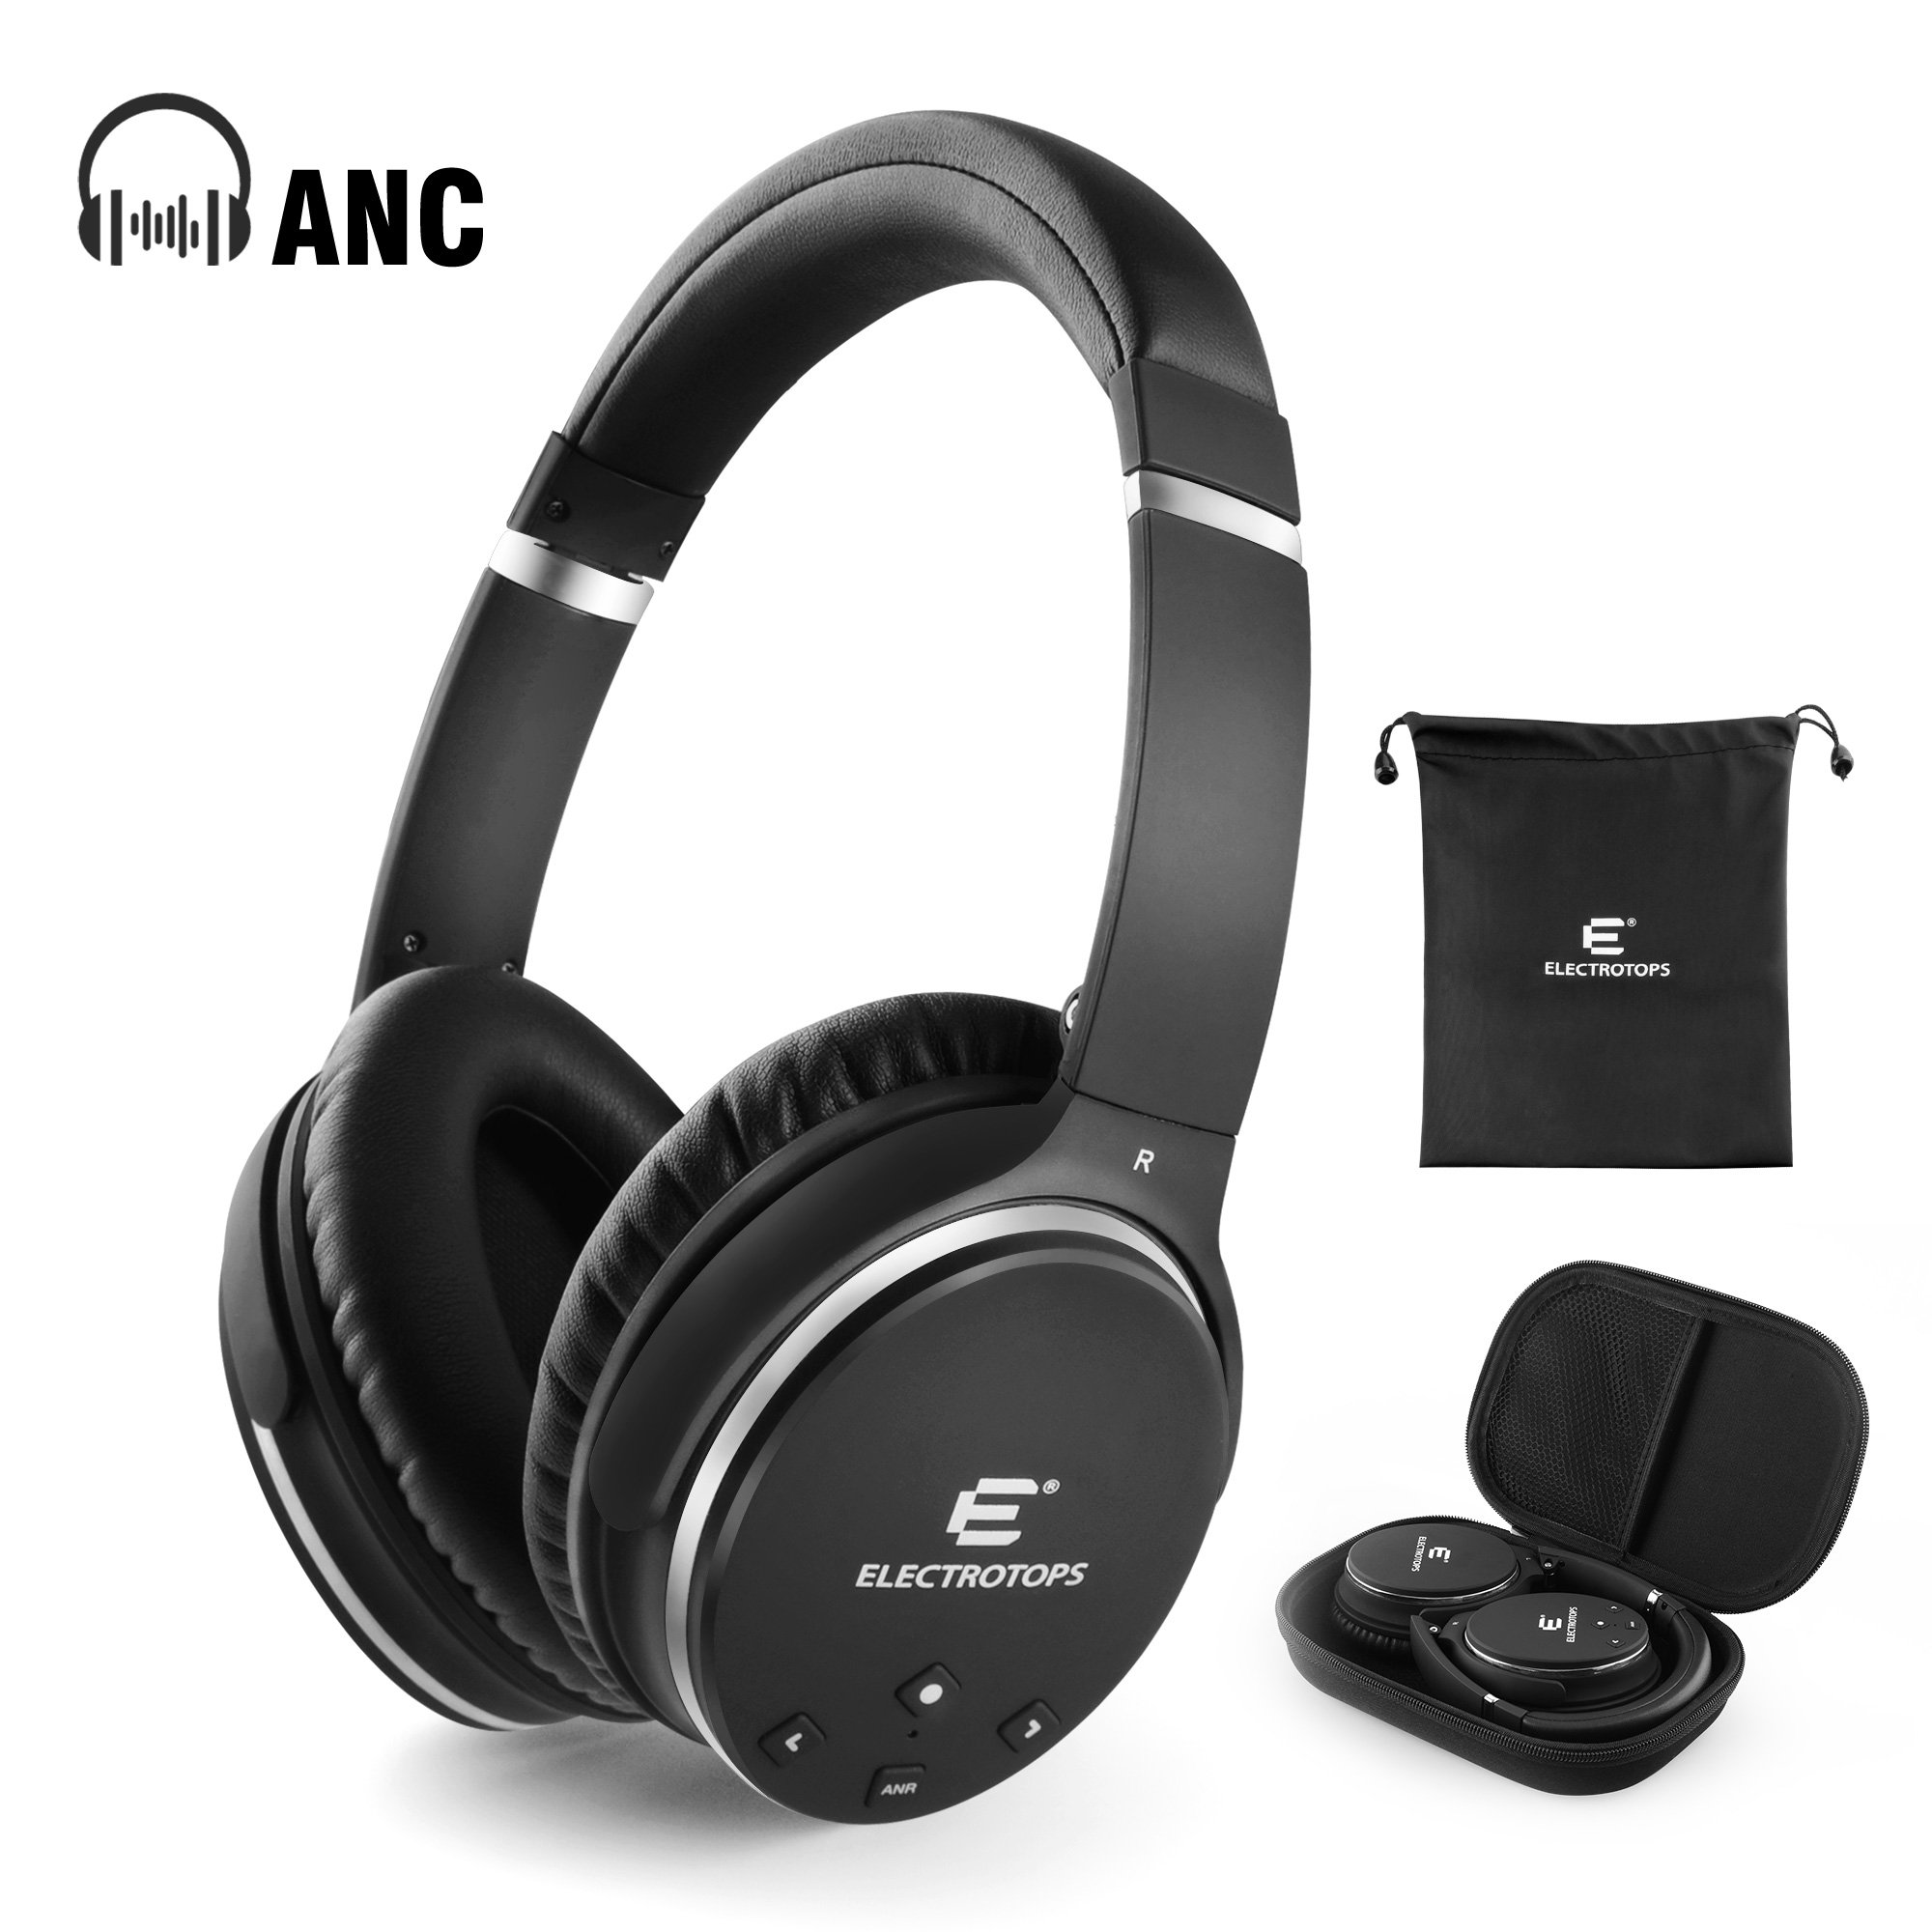 Active Noise Cancelling Headphones 4.1 Bluetooth Wireless Over-Ear Headphones CSR Chip Protein Material 90°Adjustable Ear Cover by E T